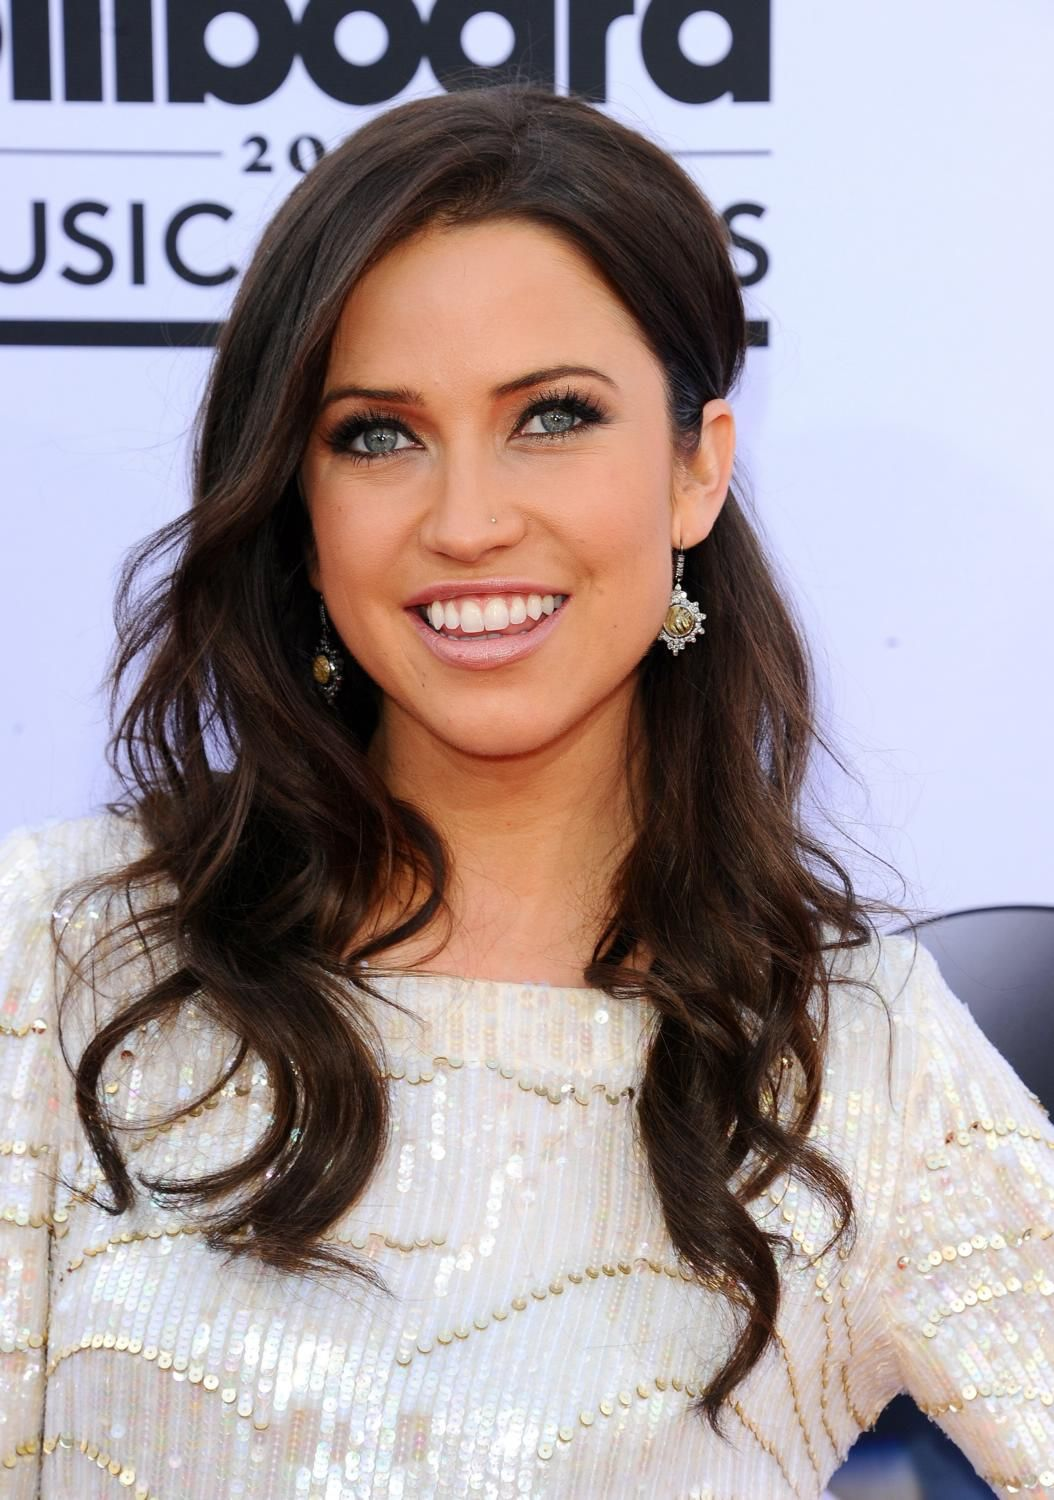 kaitlyn bristowe - photo #22